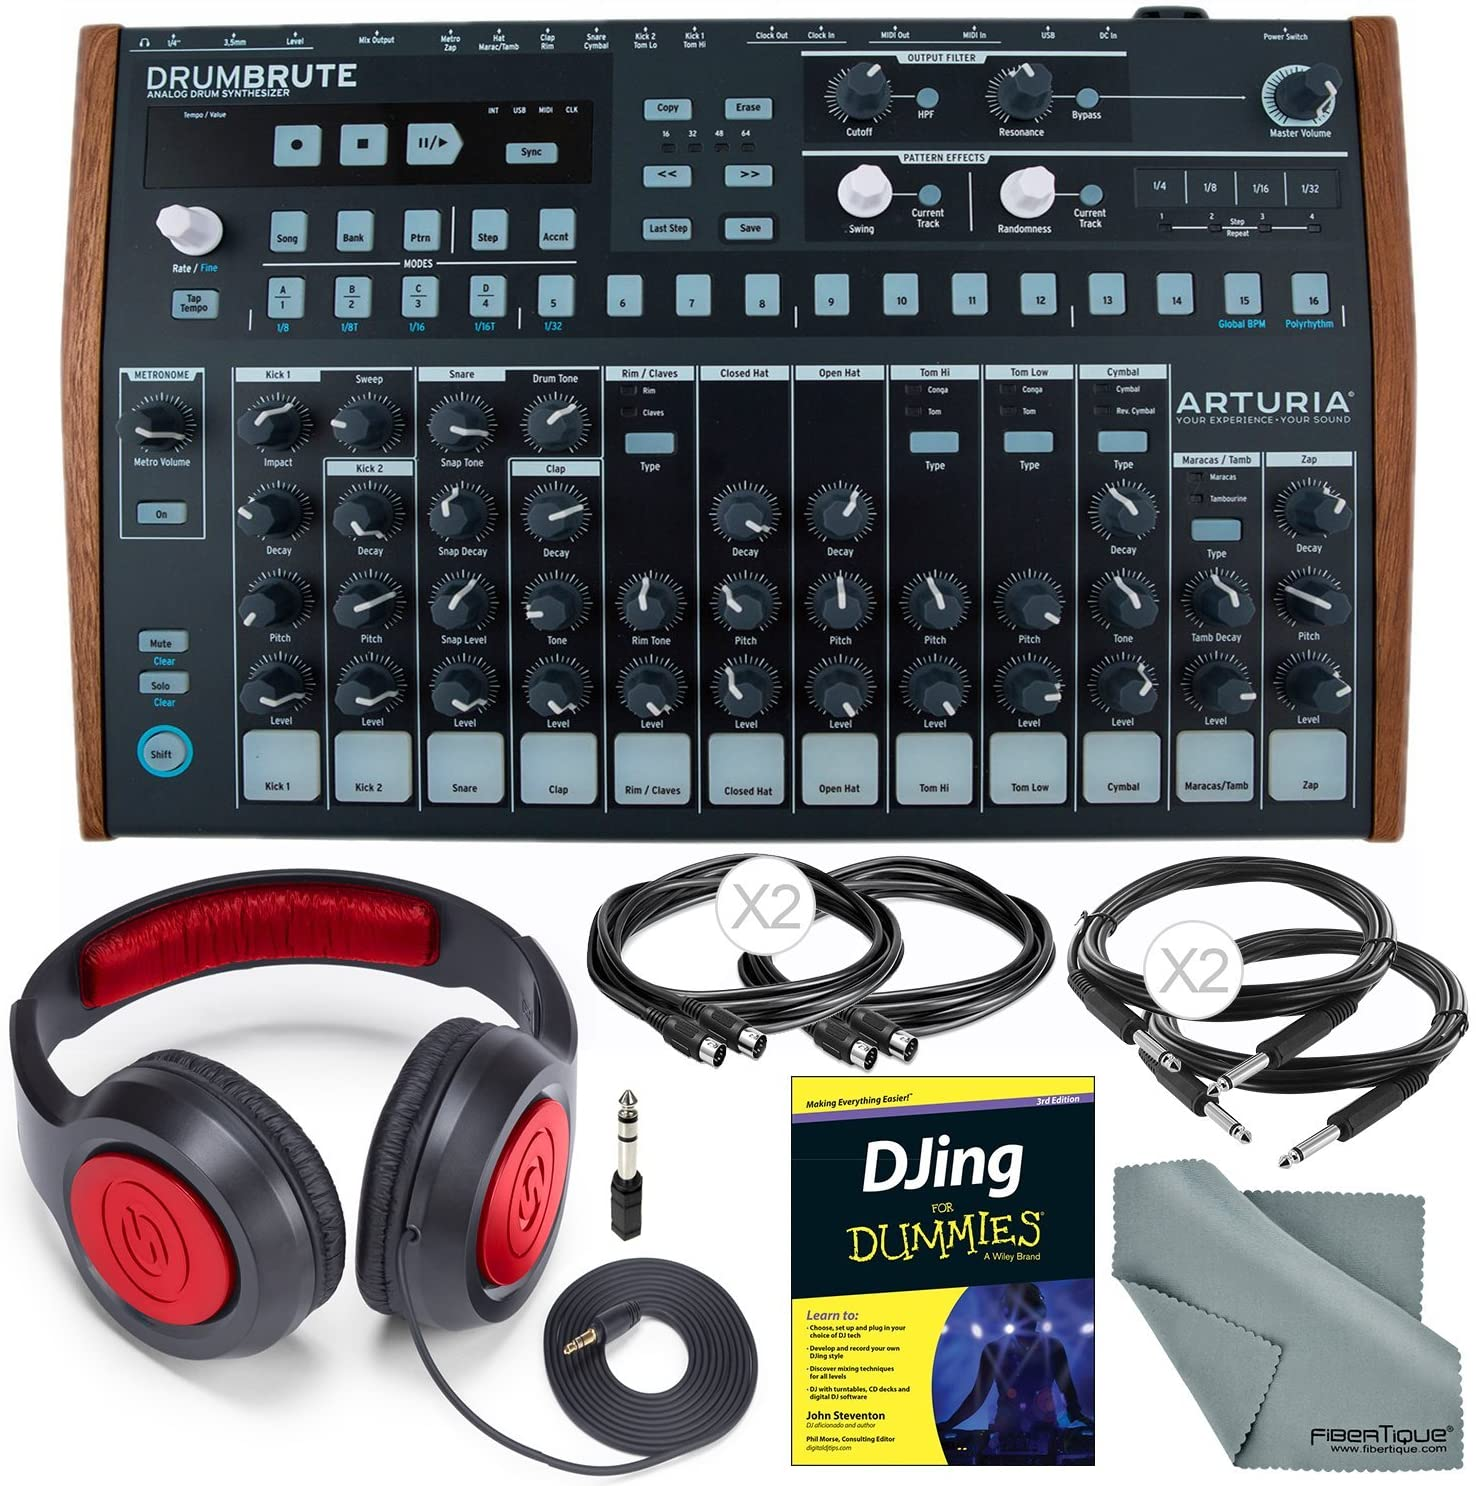 Arturia DrumBrute Analog Drum Machine and Deluxe Bundle w/Stereo Headphones + Djing for Dummies Guide + Cables + Fibertique Cloth